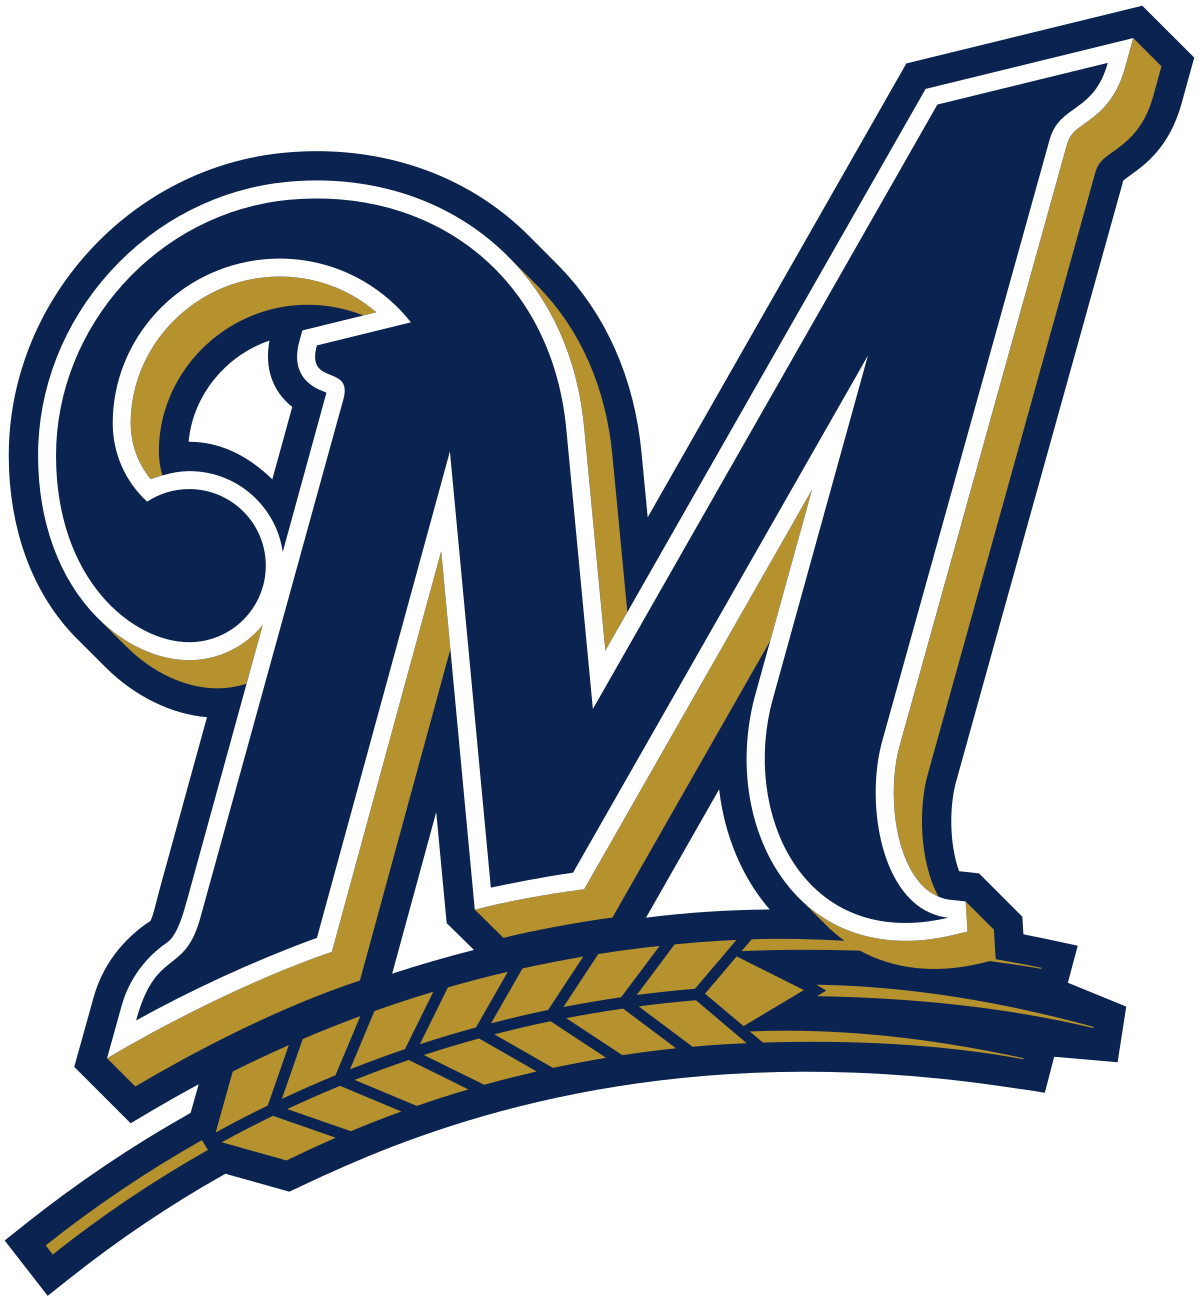 Brewers jersey clipart clipart royalty free library Milwaukee Brewers - Wikipedia clipart royalty free library